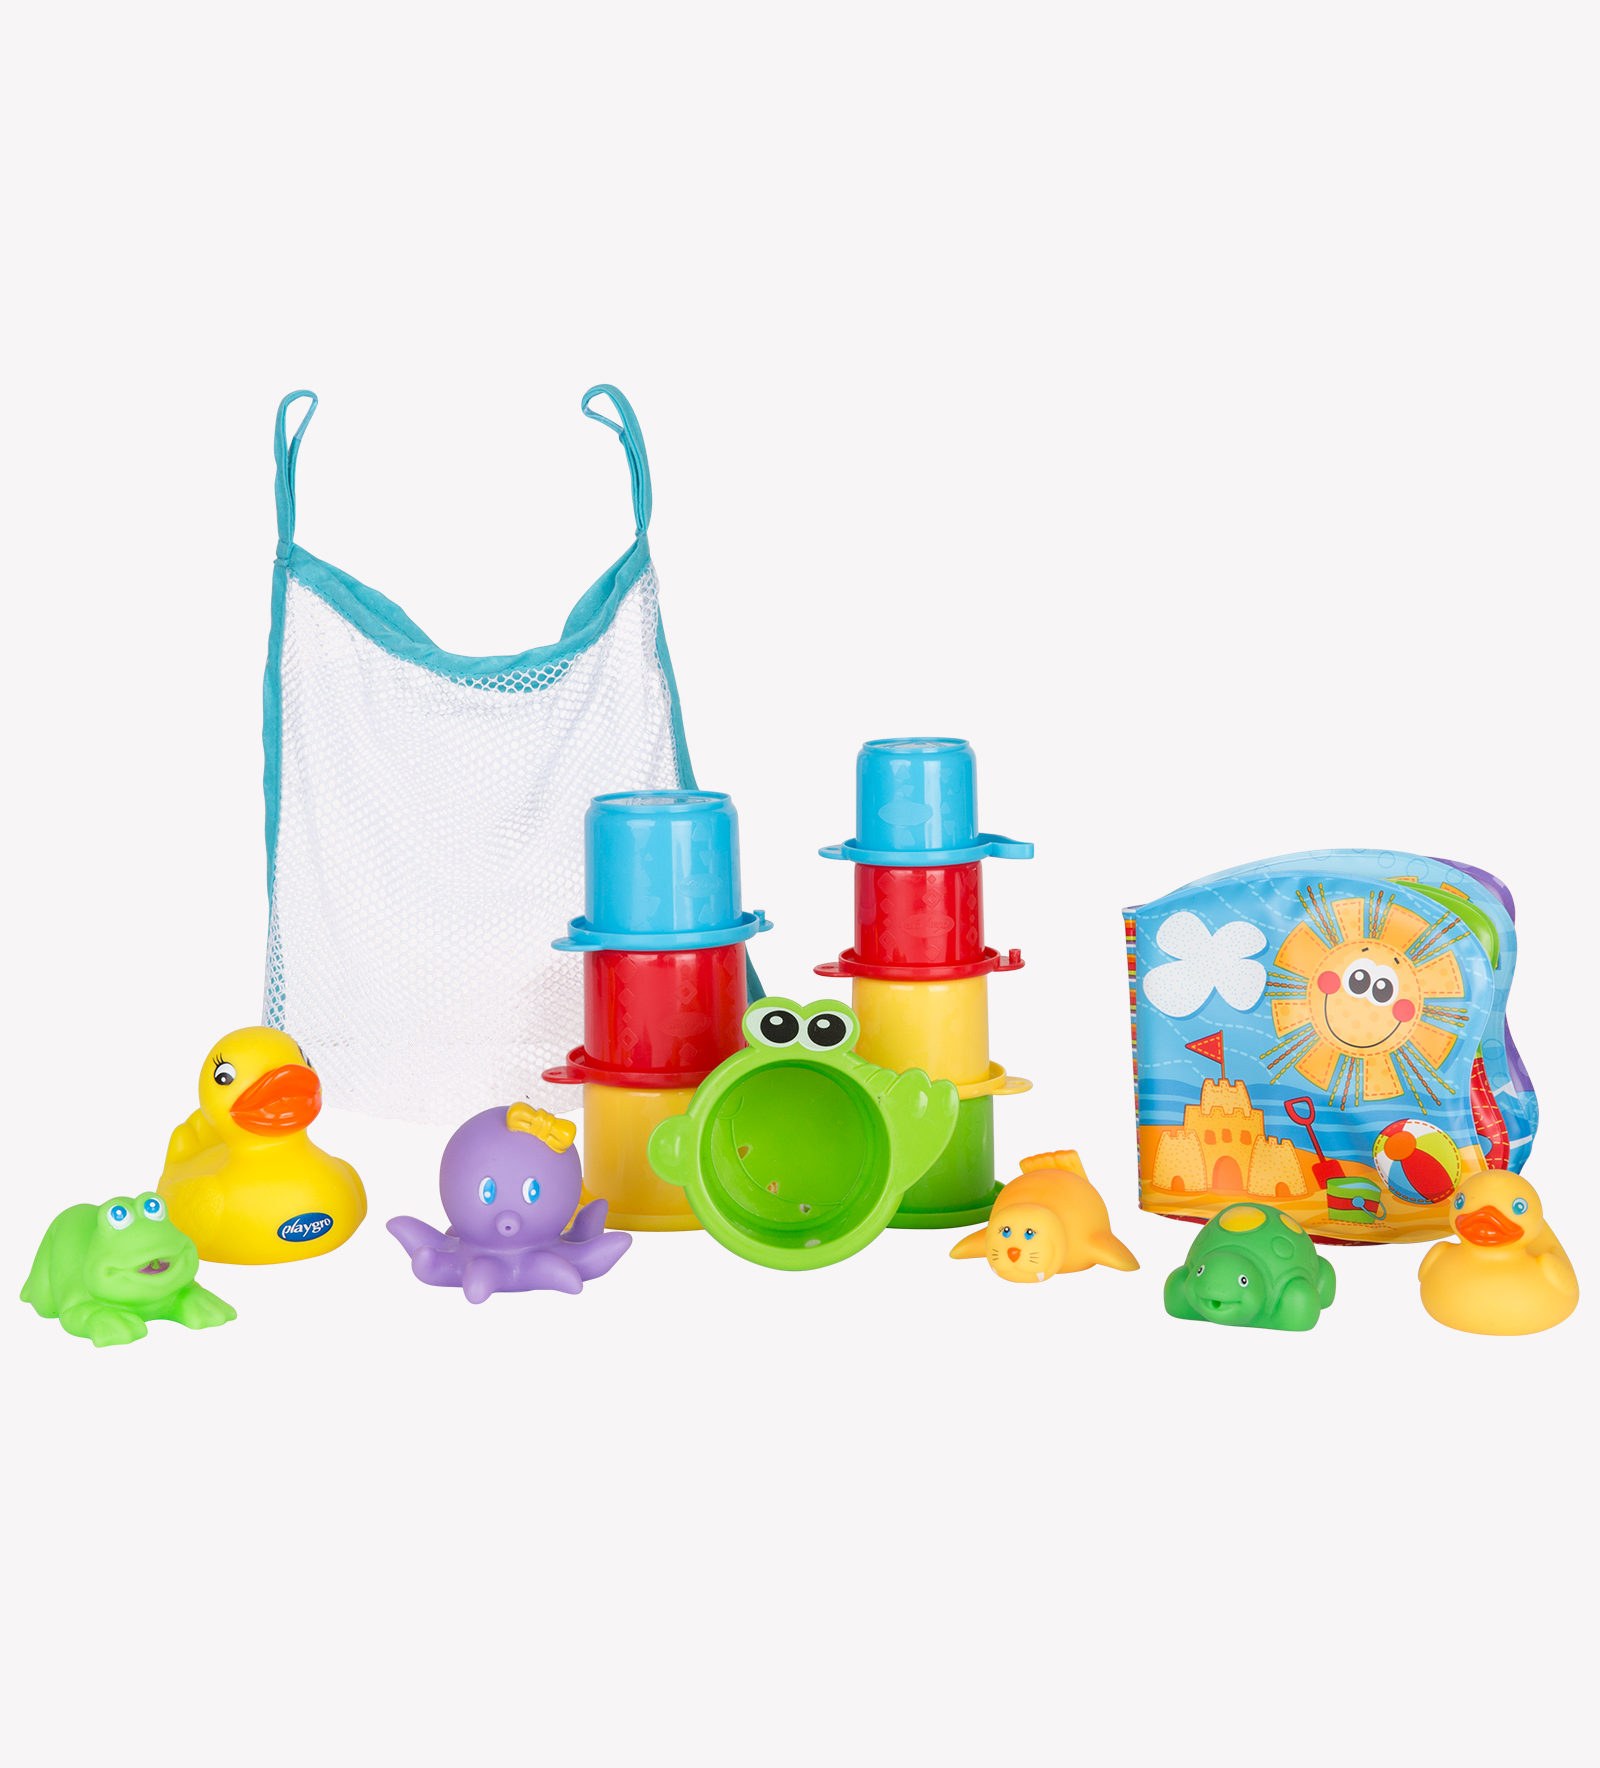 Image result for playgro Bath fun gift pack